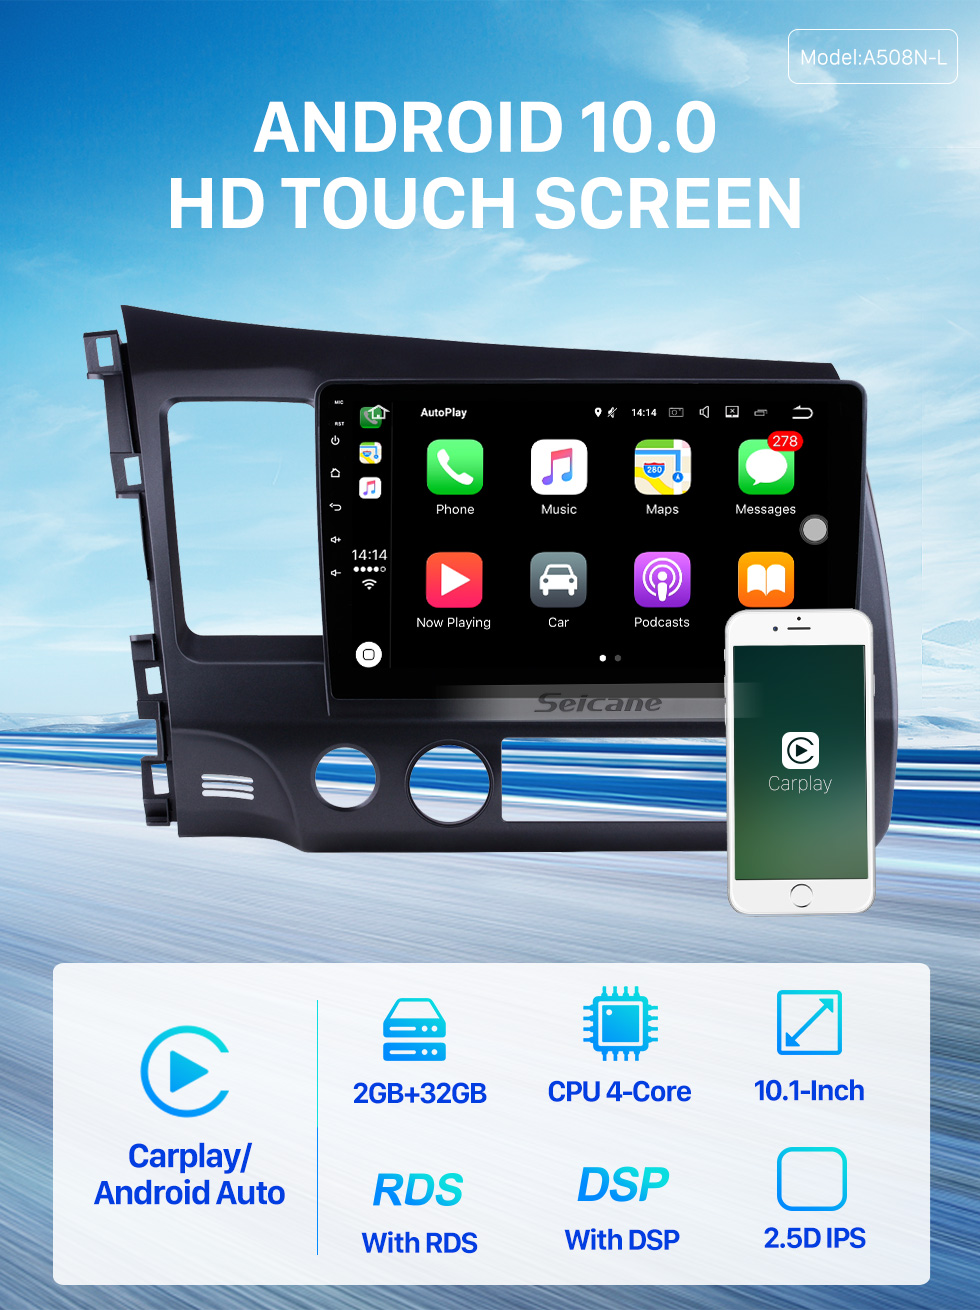 Seicane Android 10.0 Autoradio Navigation Aftermarket Stereo for 2006-2011 Honda Civic with 3G WiFi DVD Radio RDS Bluetooth OBD2 Steering Wheel Control AUX